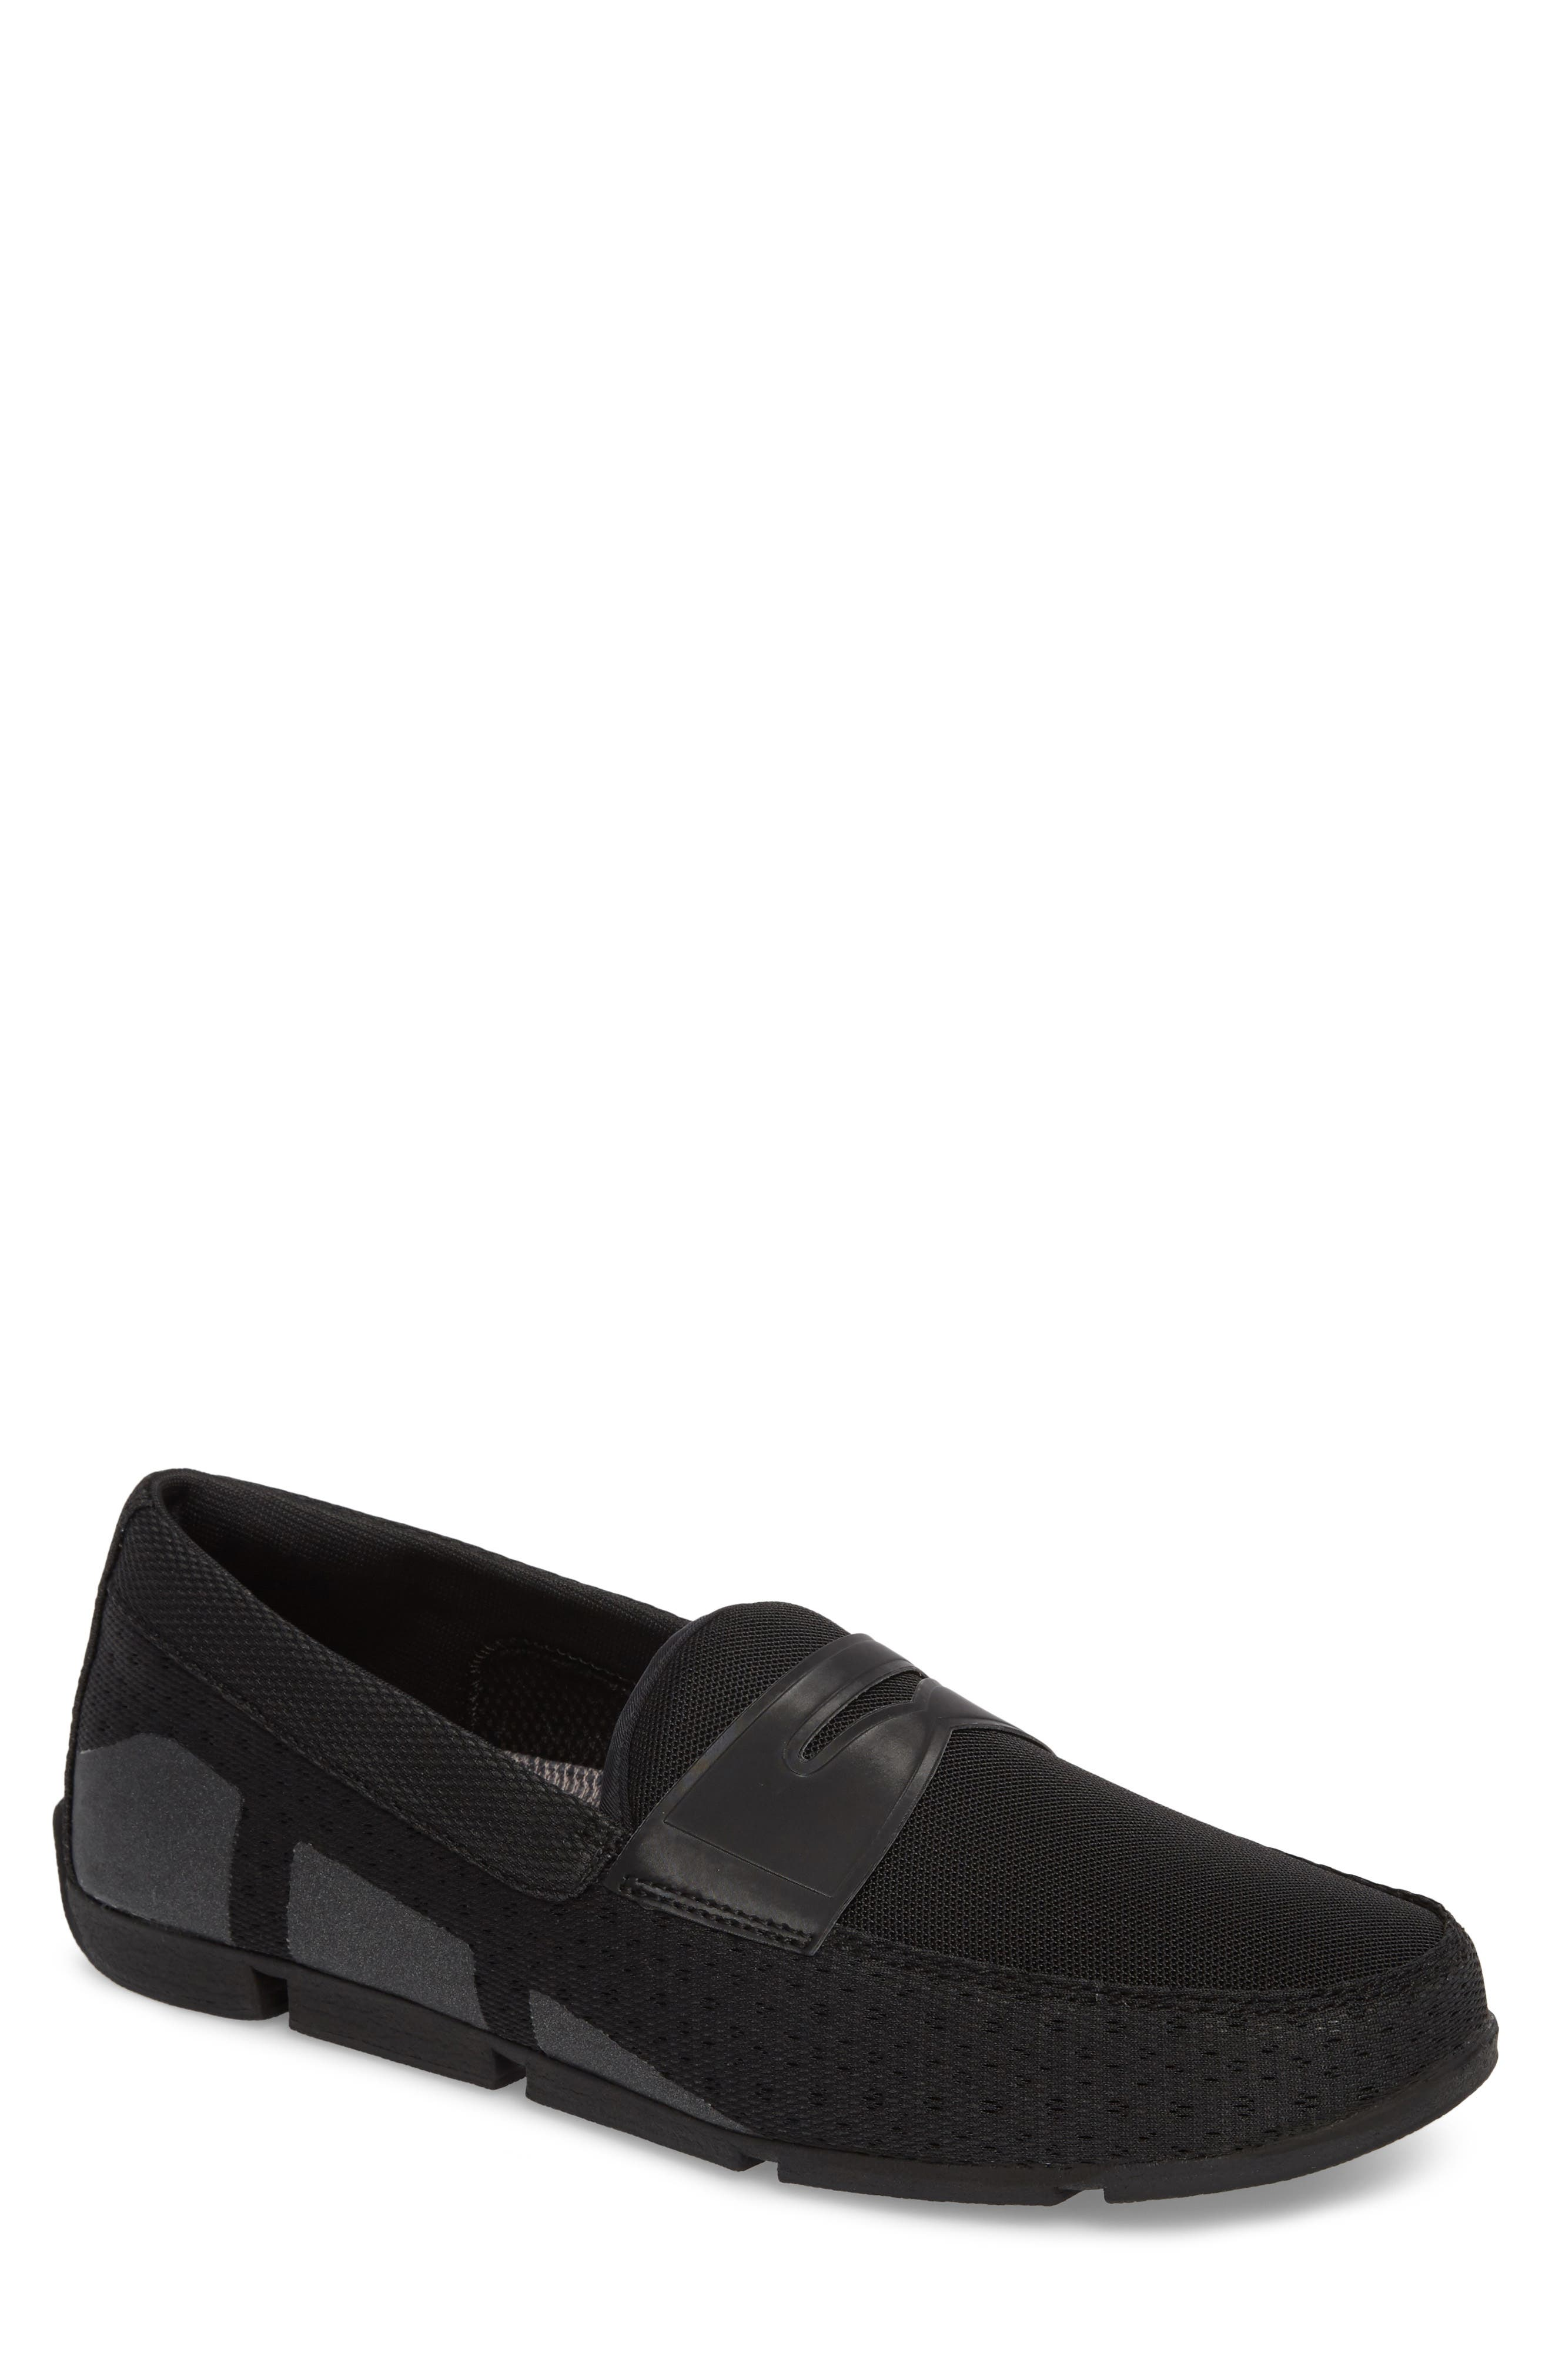 Alternate Image 1 Selected - Swims Breeze Penny Loafer (Men)